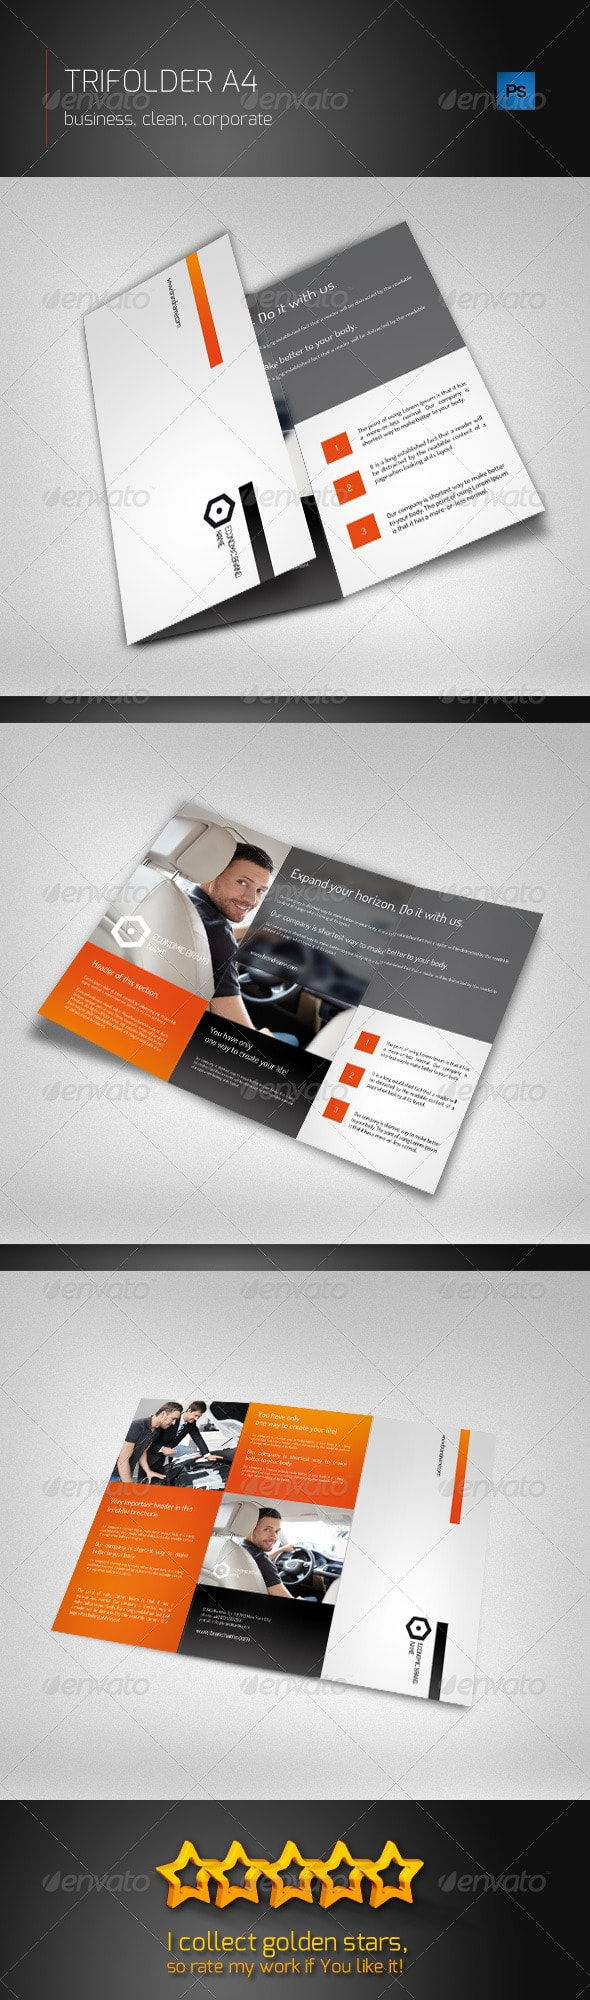 Trifolder Business Brochure